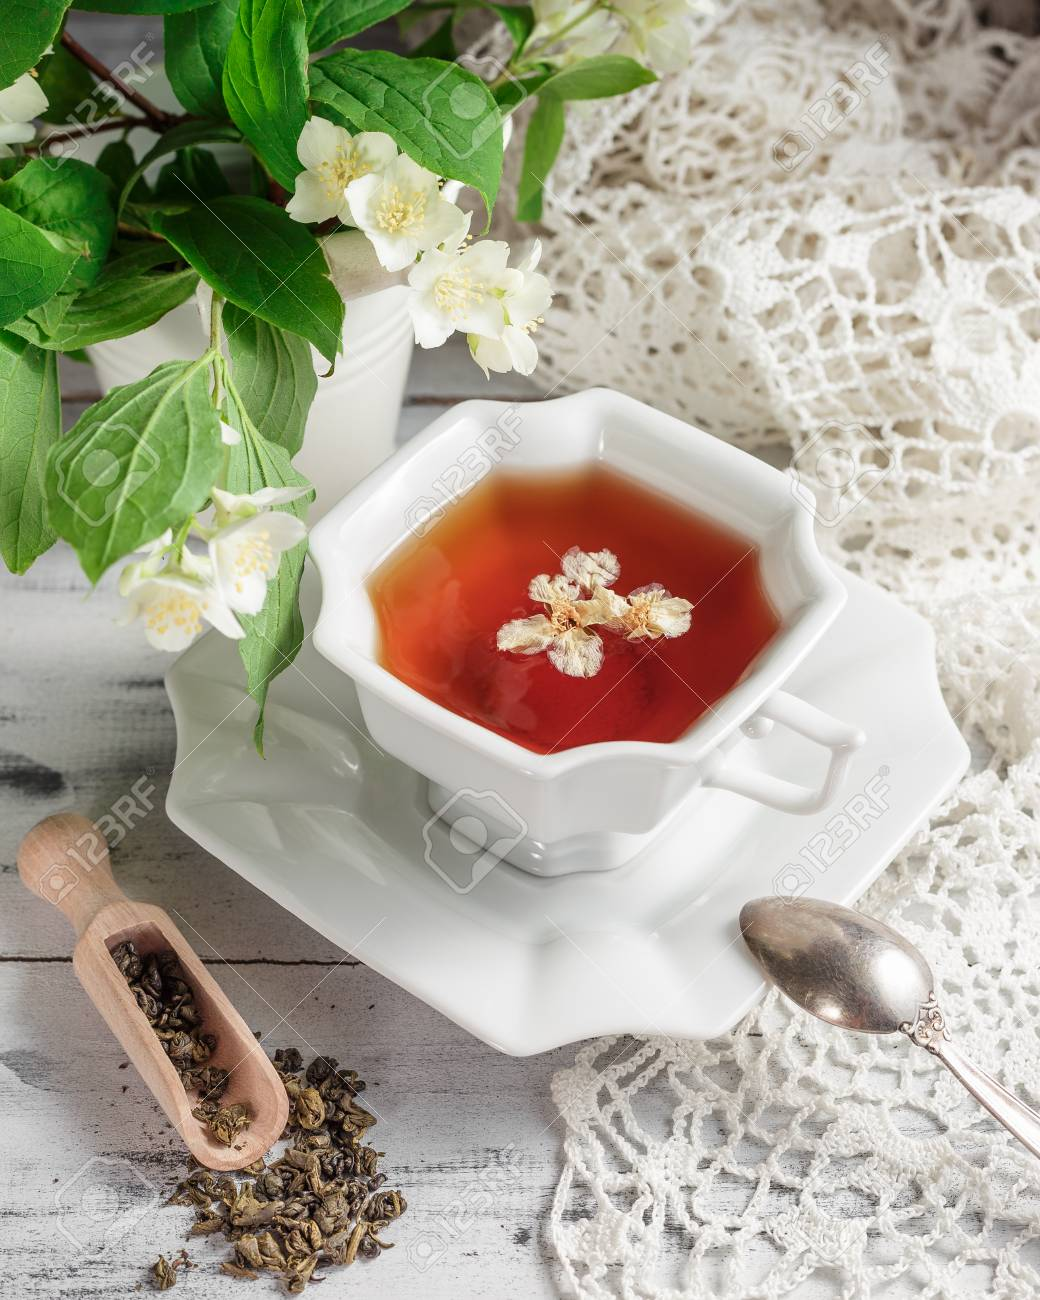 White Porcelain Cup Of Tea With Jasmine Flowers Scattered Dry